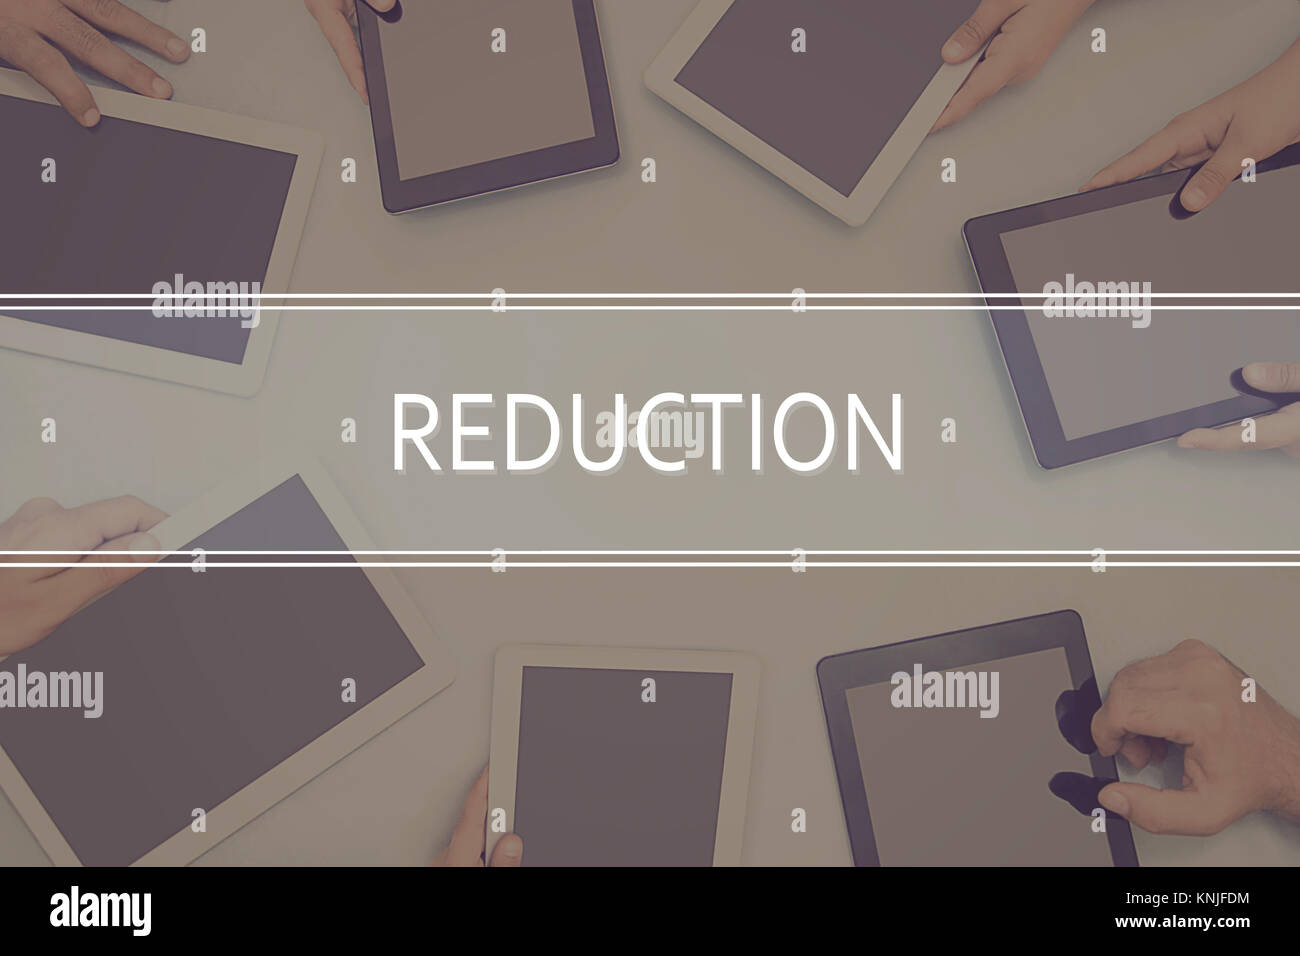 REDUCTION CONCEPT Business Concept. - Stock Image